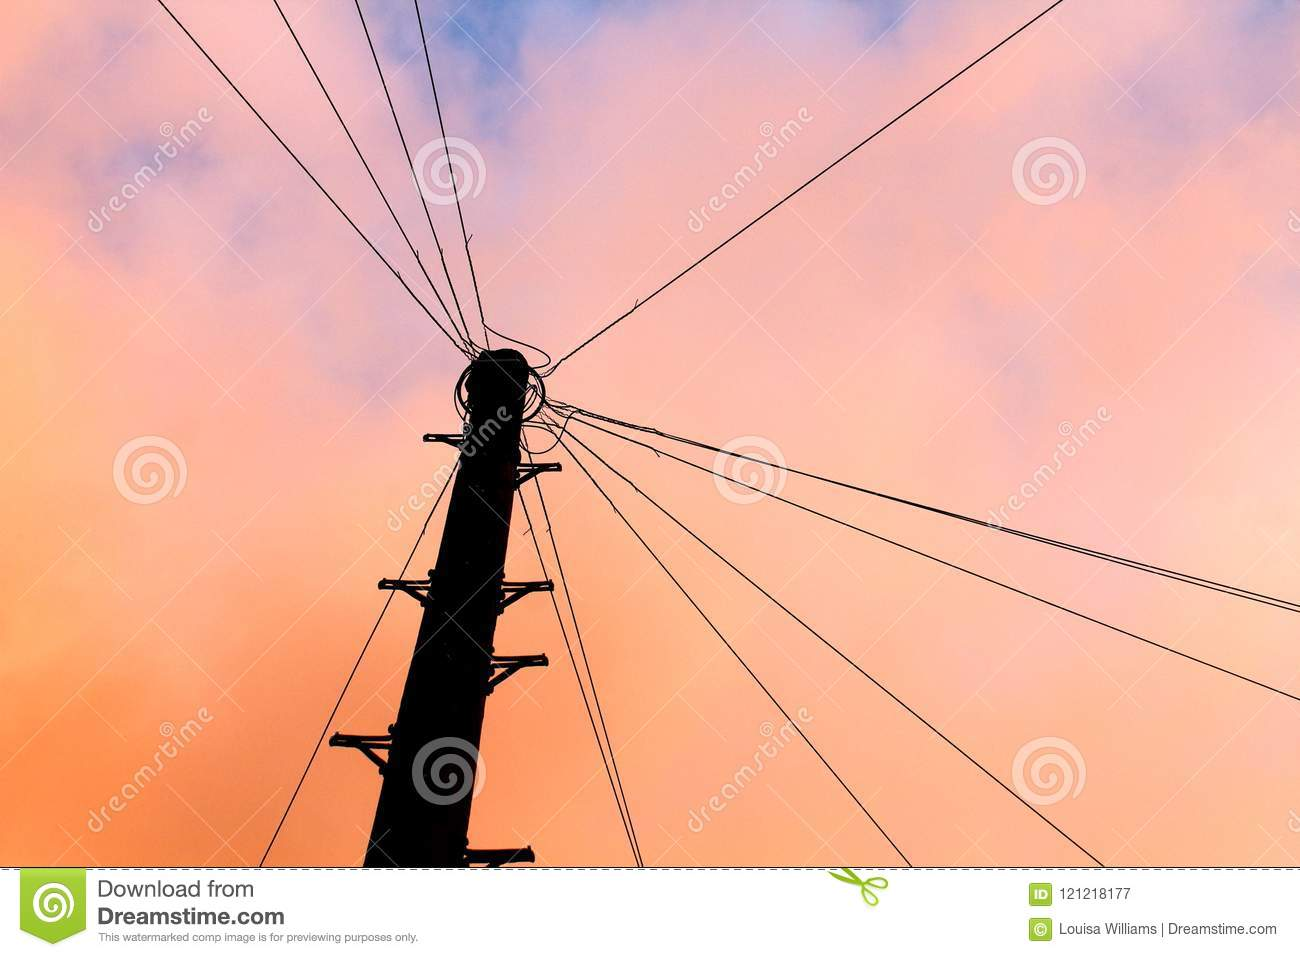 Telegraph Pole Silhouette at Sunset